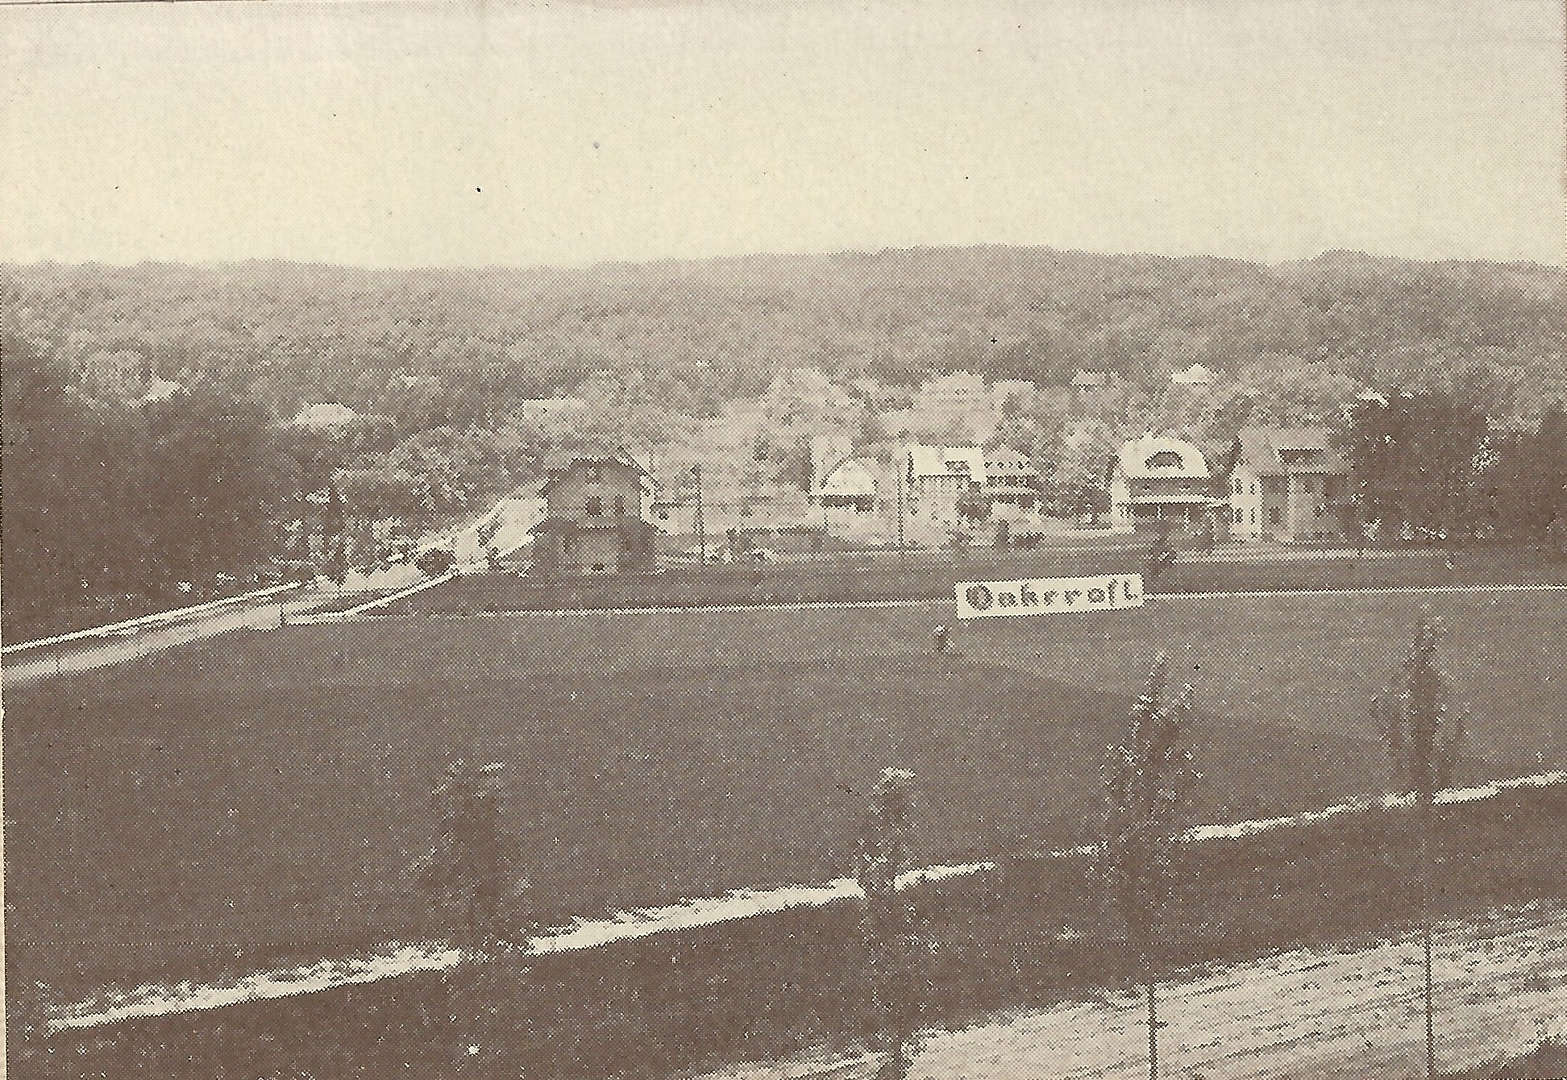 Oakcroft in its early days, looking west from the train tracks, with a sign heralding the subdivision. From the Oakcroft sales brochure, circa 1908.